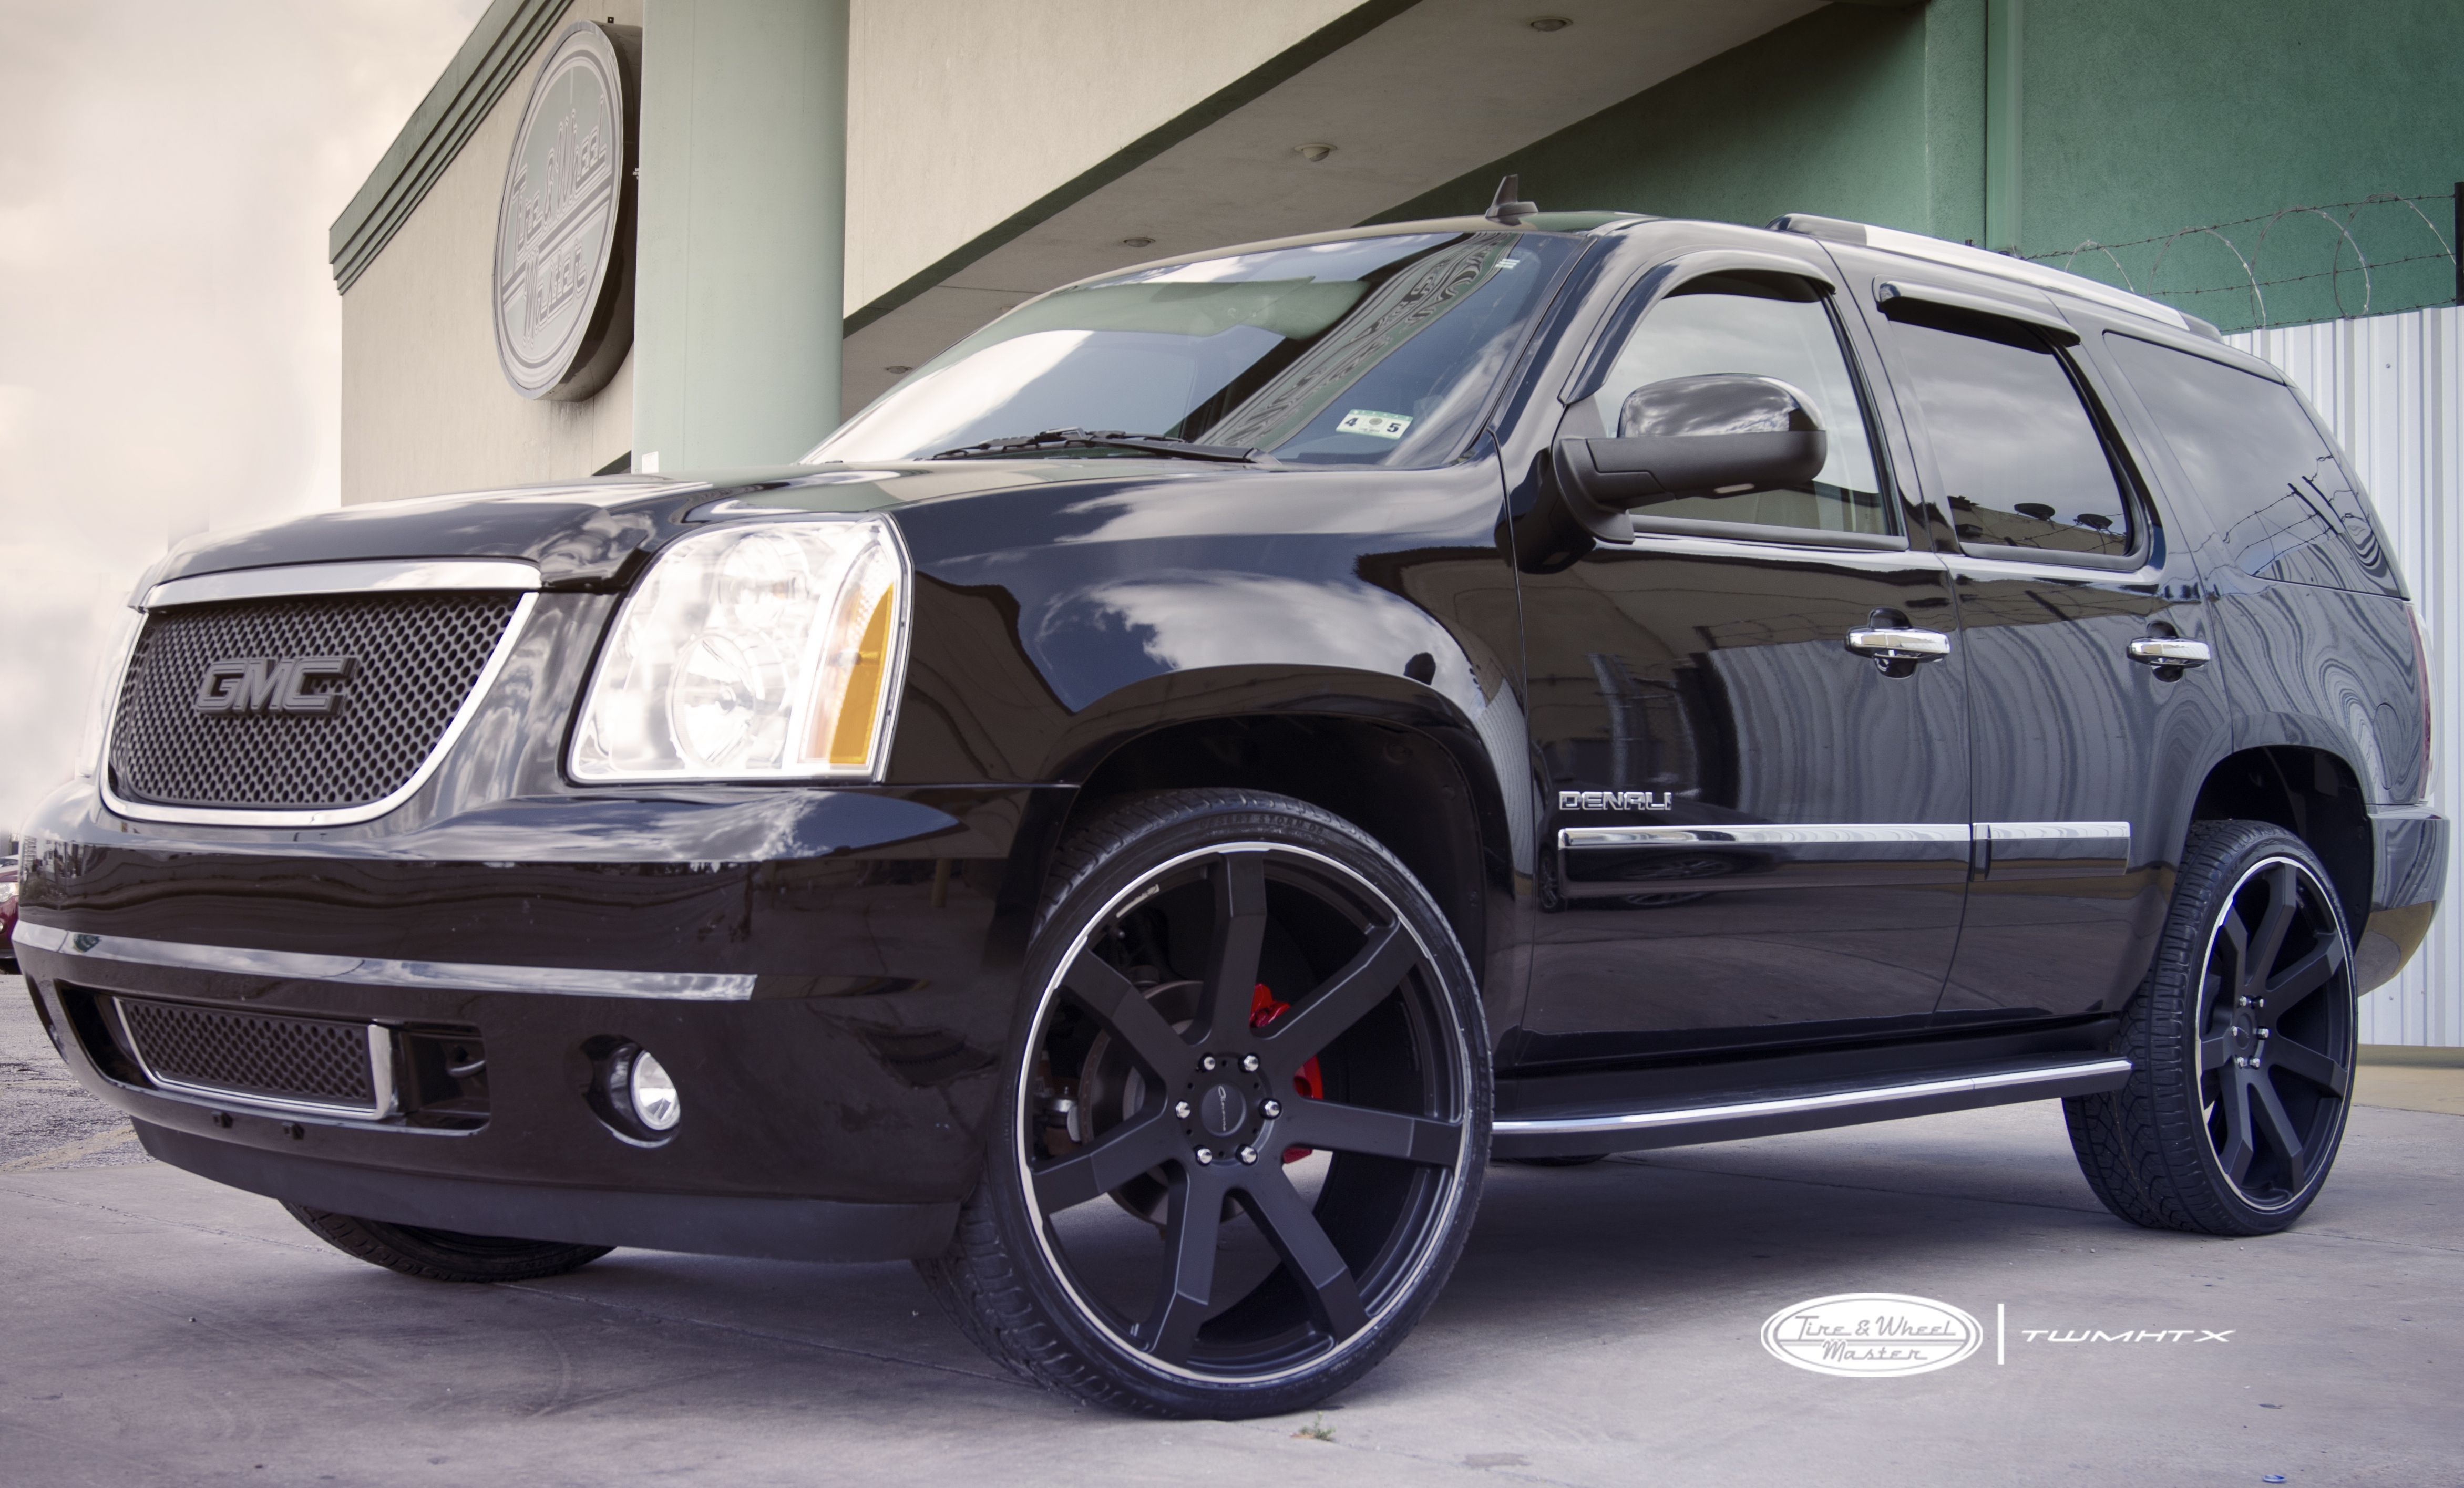 Black Gmc Yukon Denali With 26 Inch Giovanna Andros Wheels And